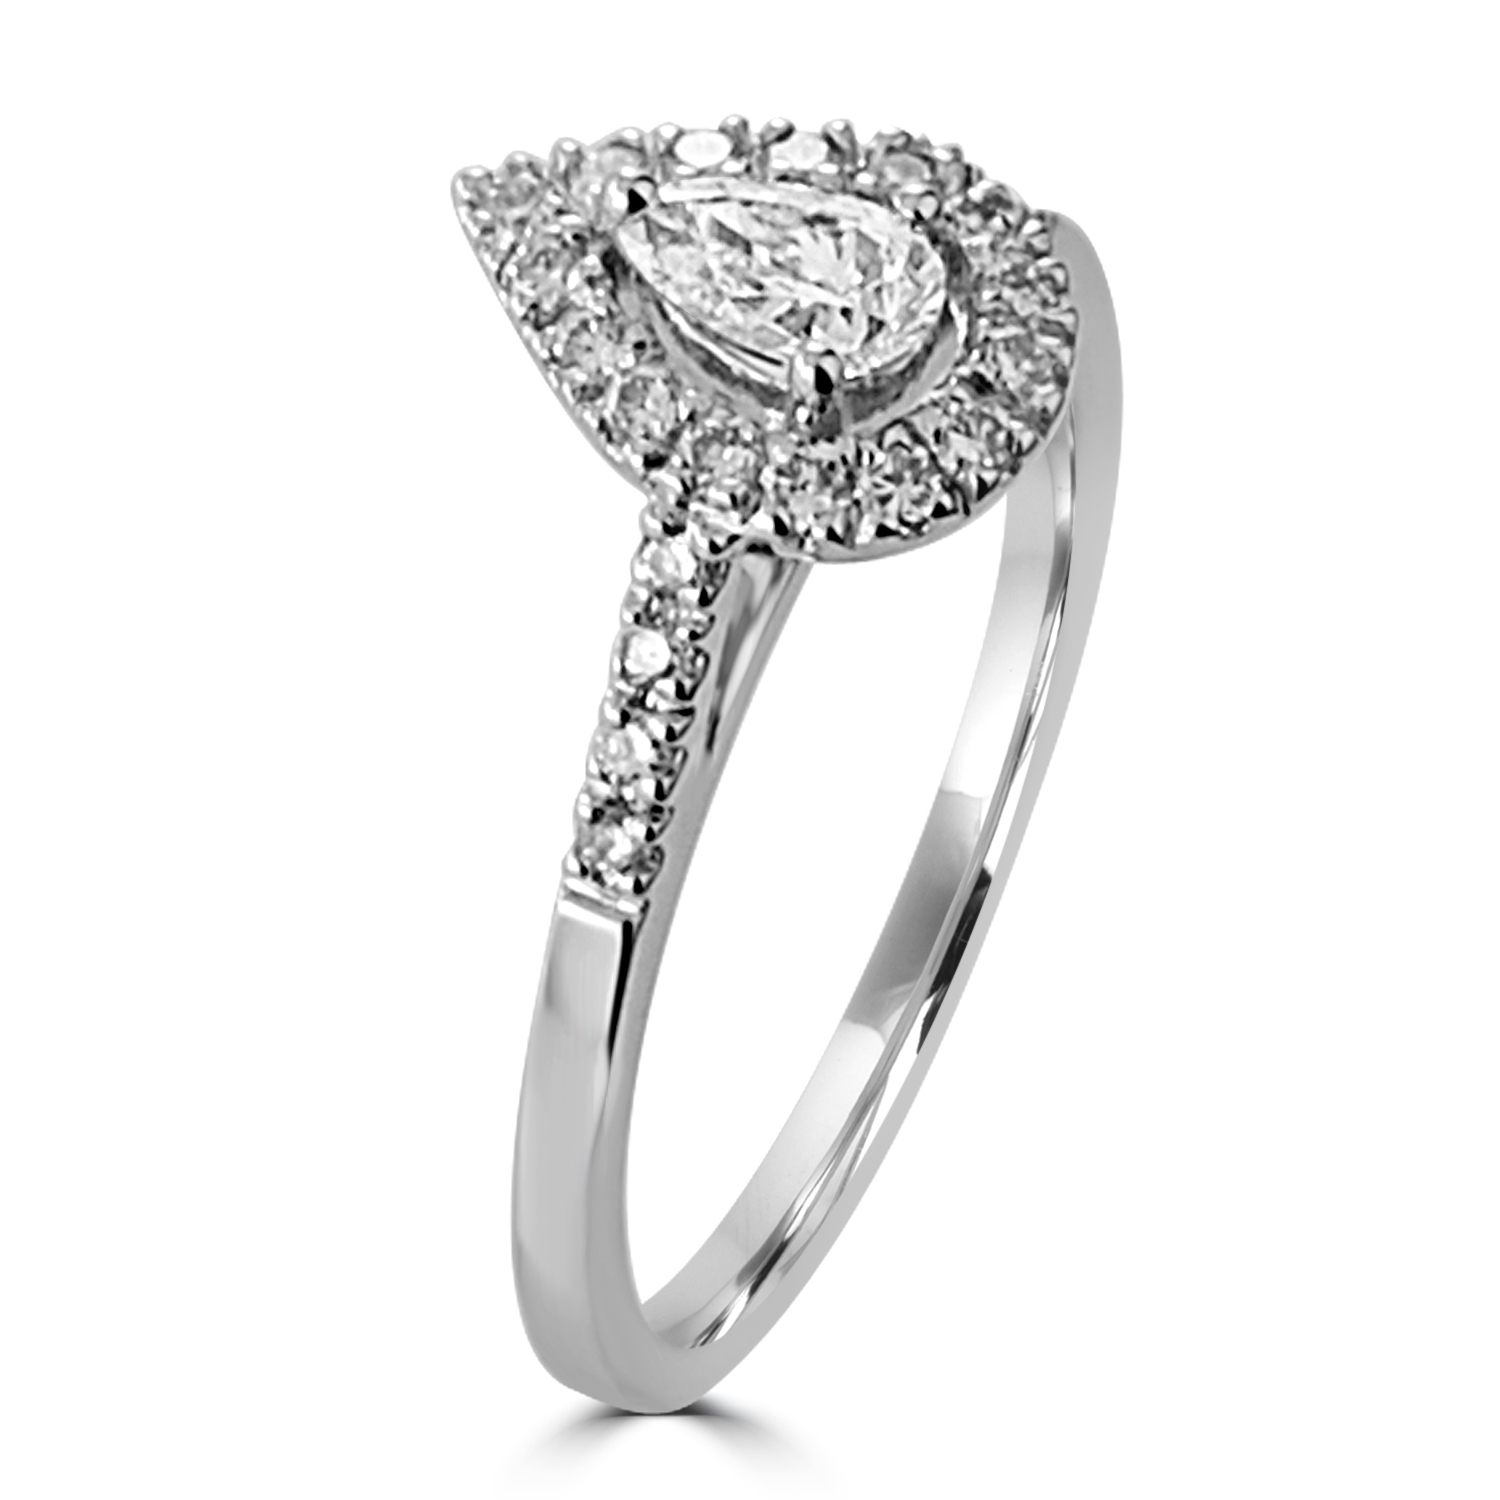 Stunning Pear Shaped Halo Design Engagement Ring